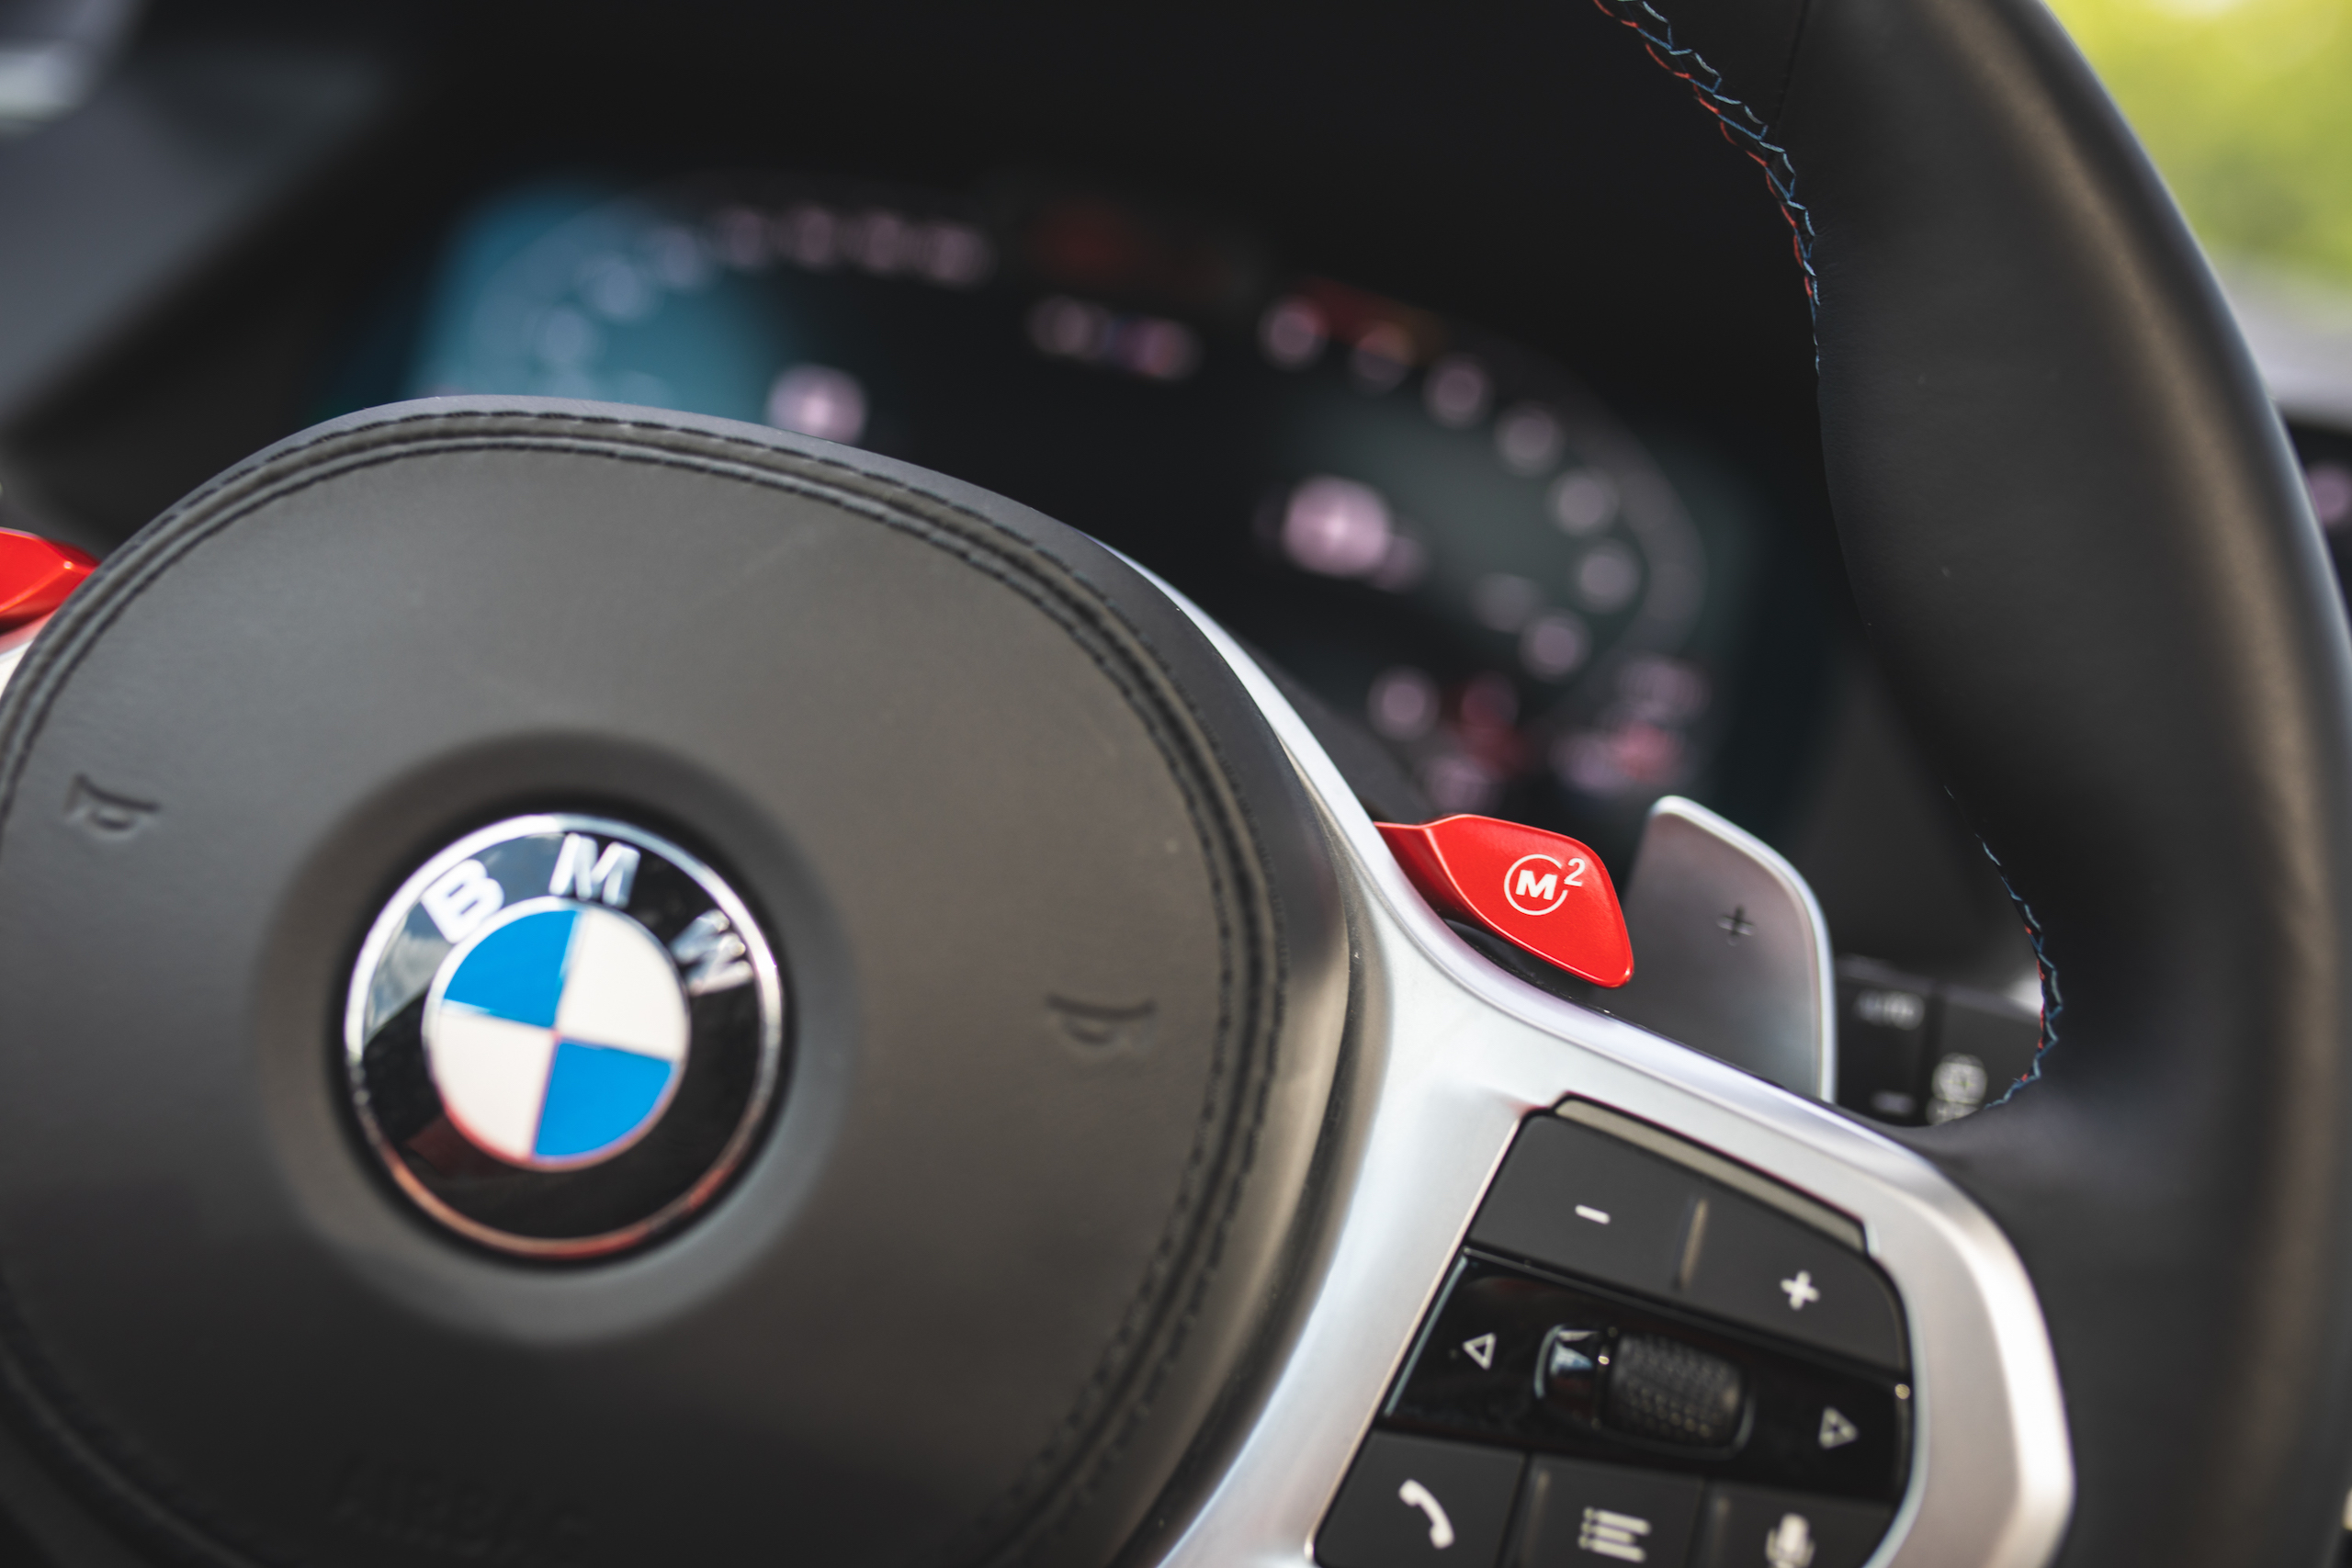 bmw x5m steering wheel red lever detail